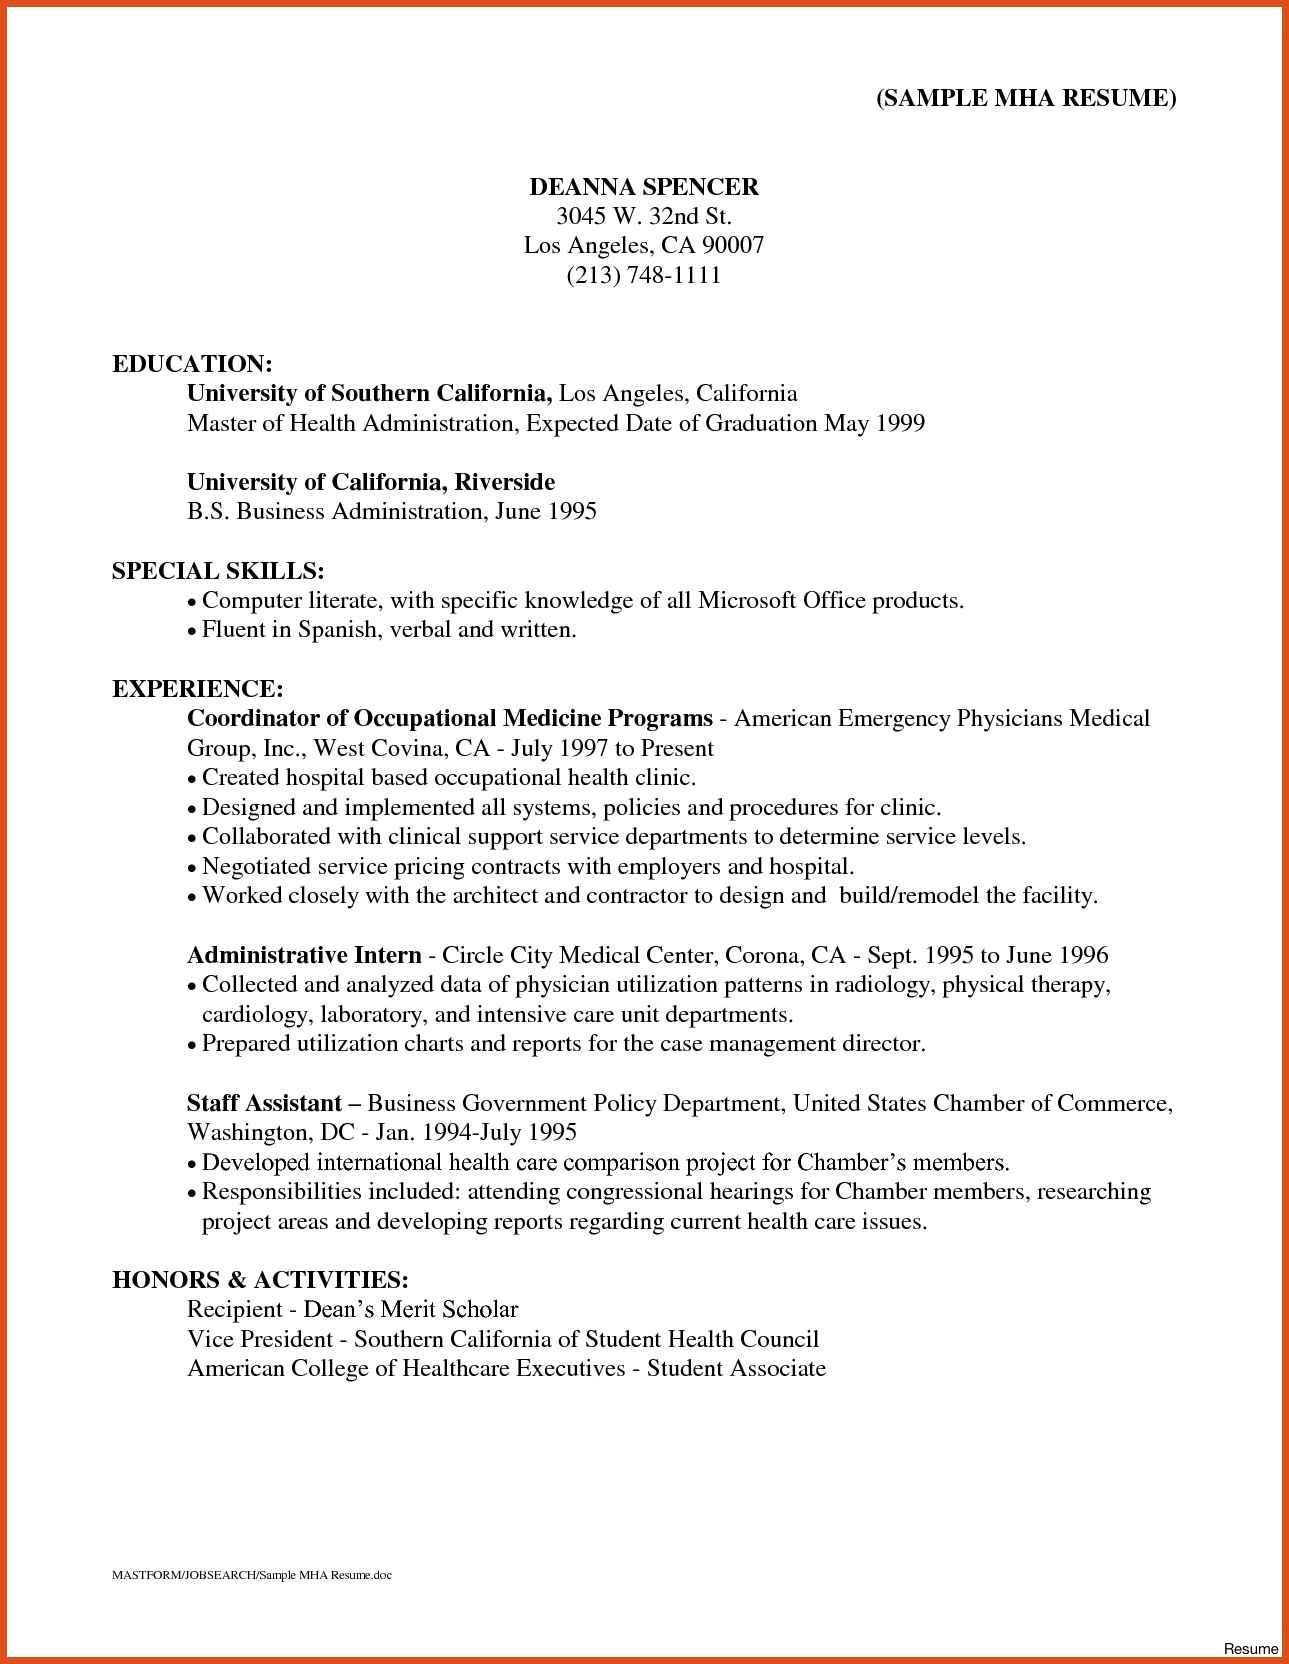 Qualifications In 2020 Graphic Resume Resume Templates Writing